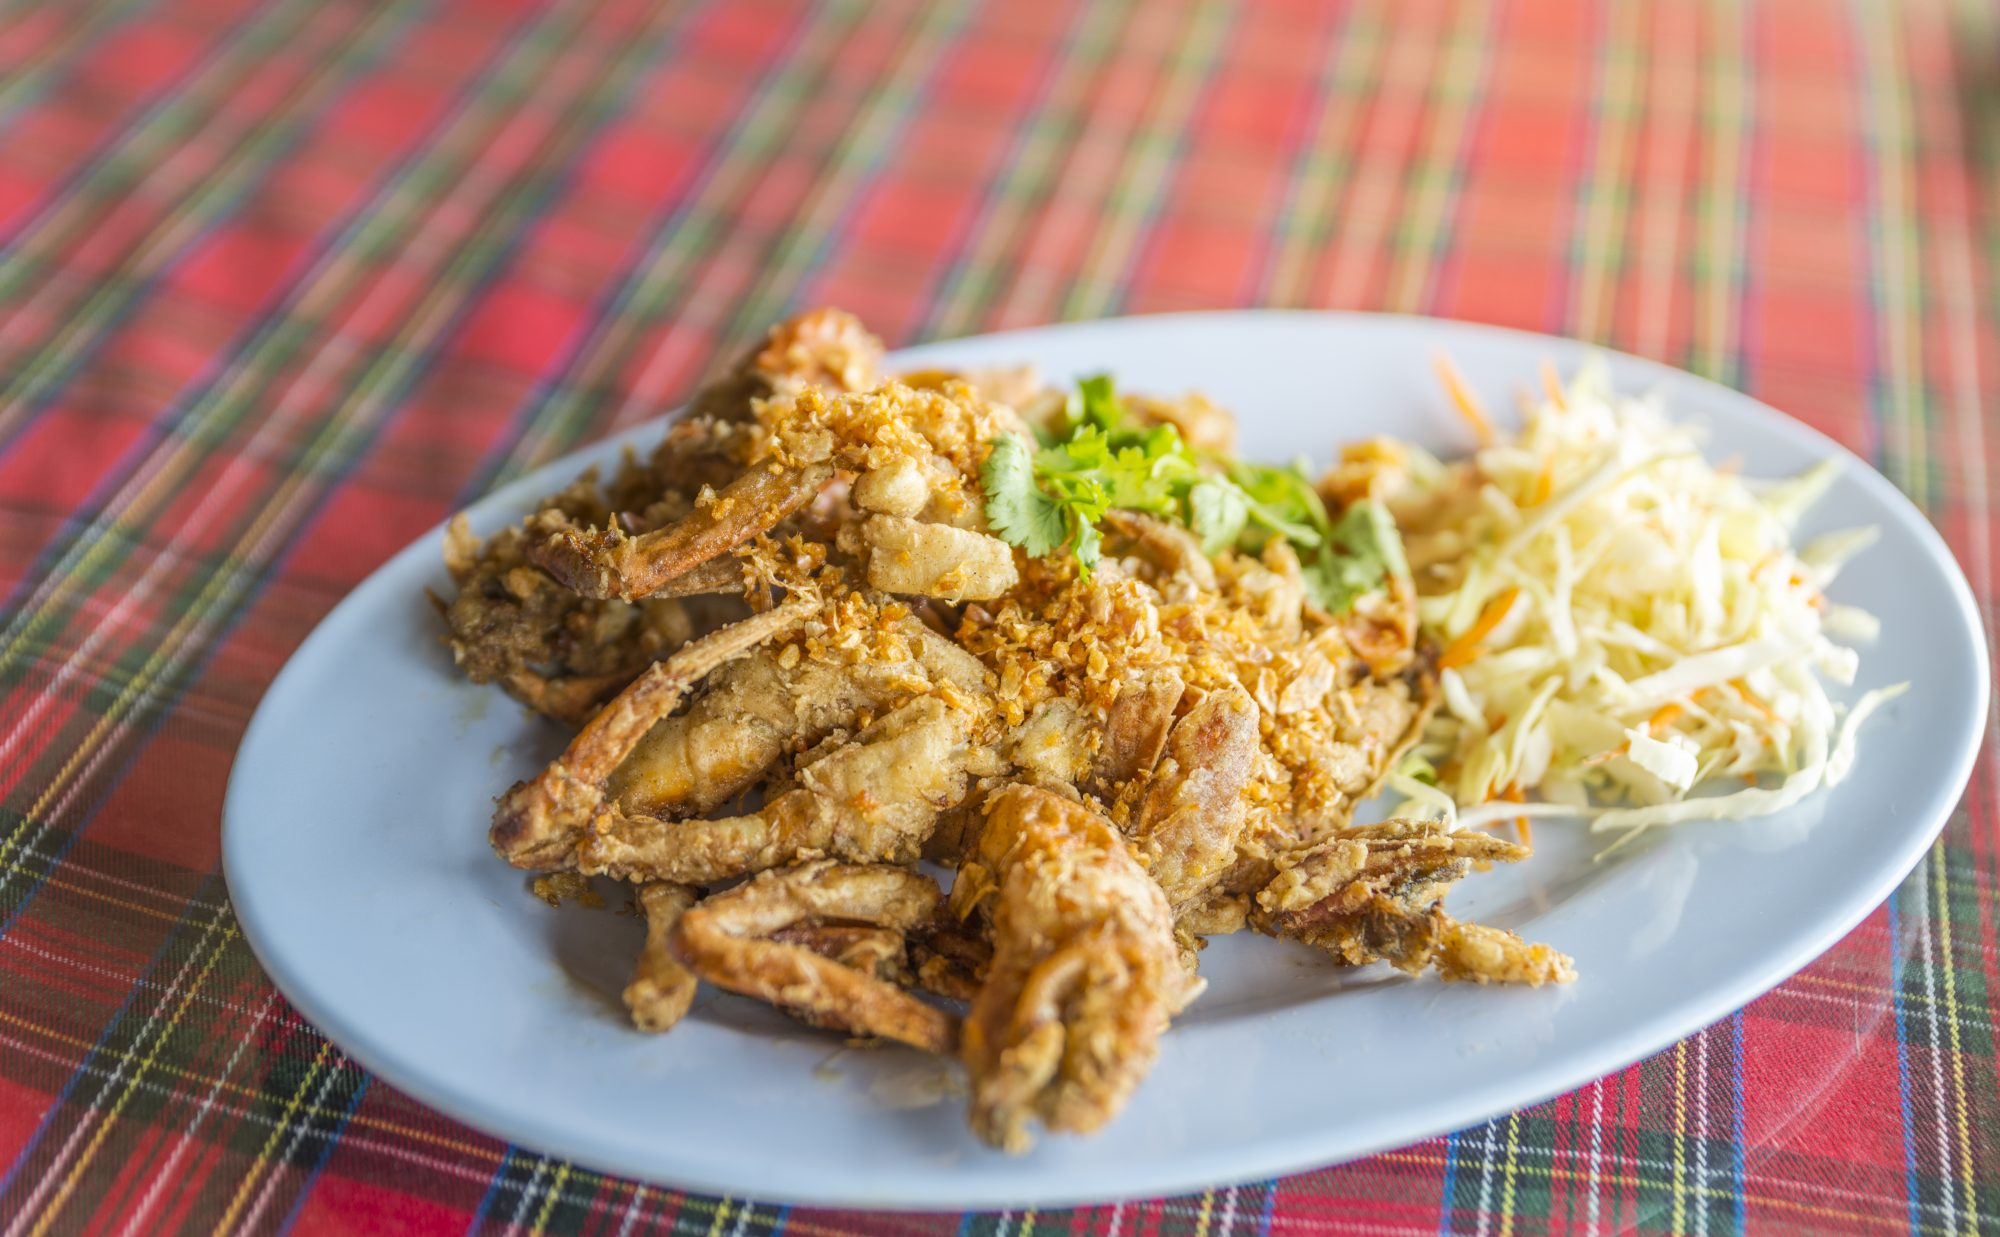 Where to Buy Soft-Shell Crabs Online